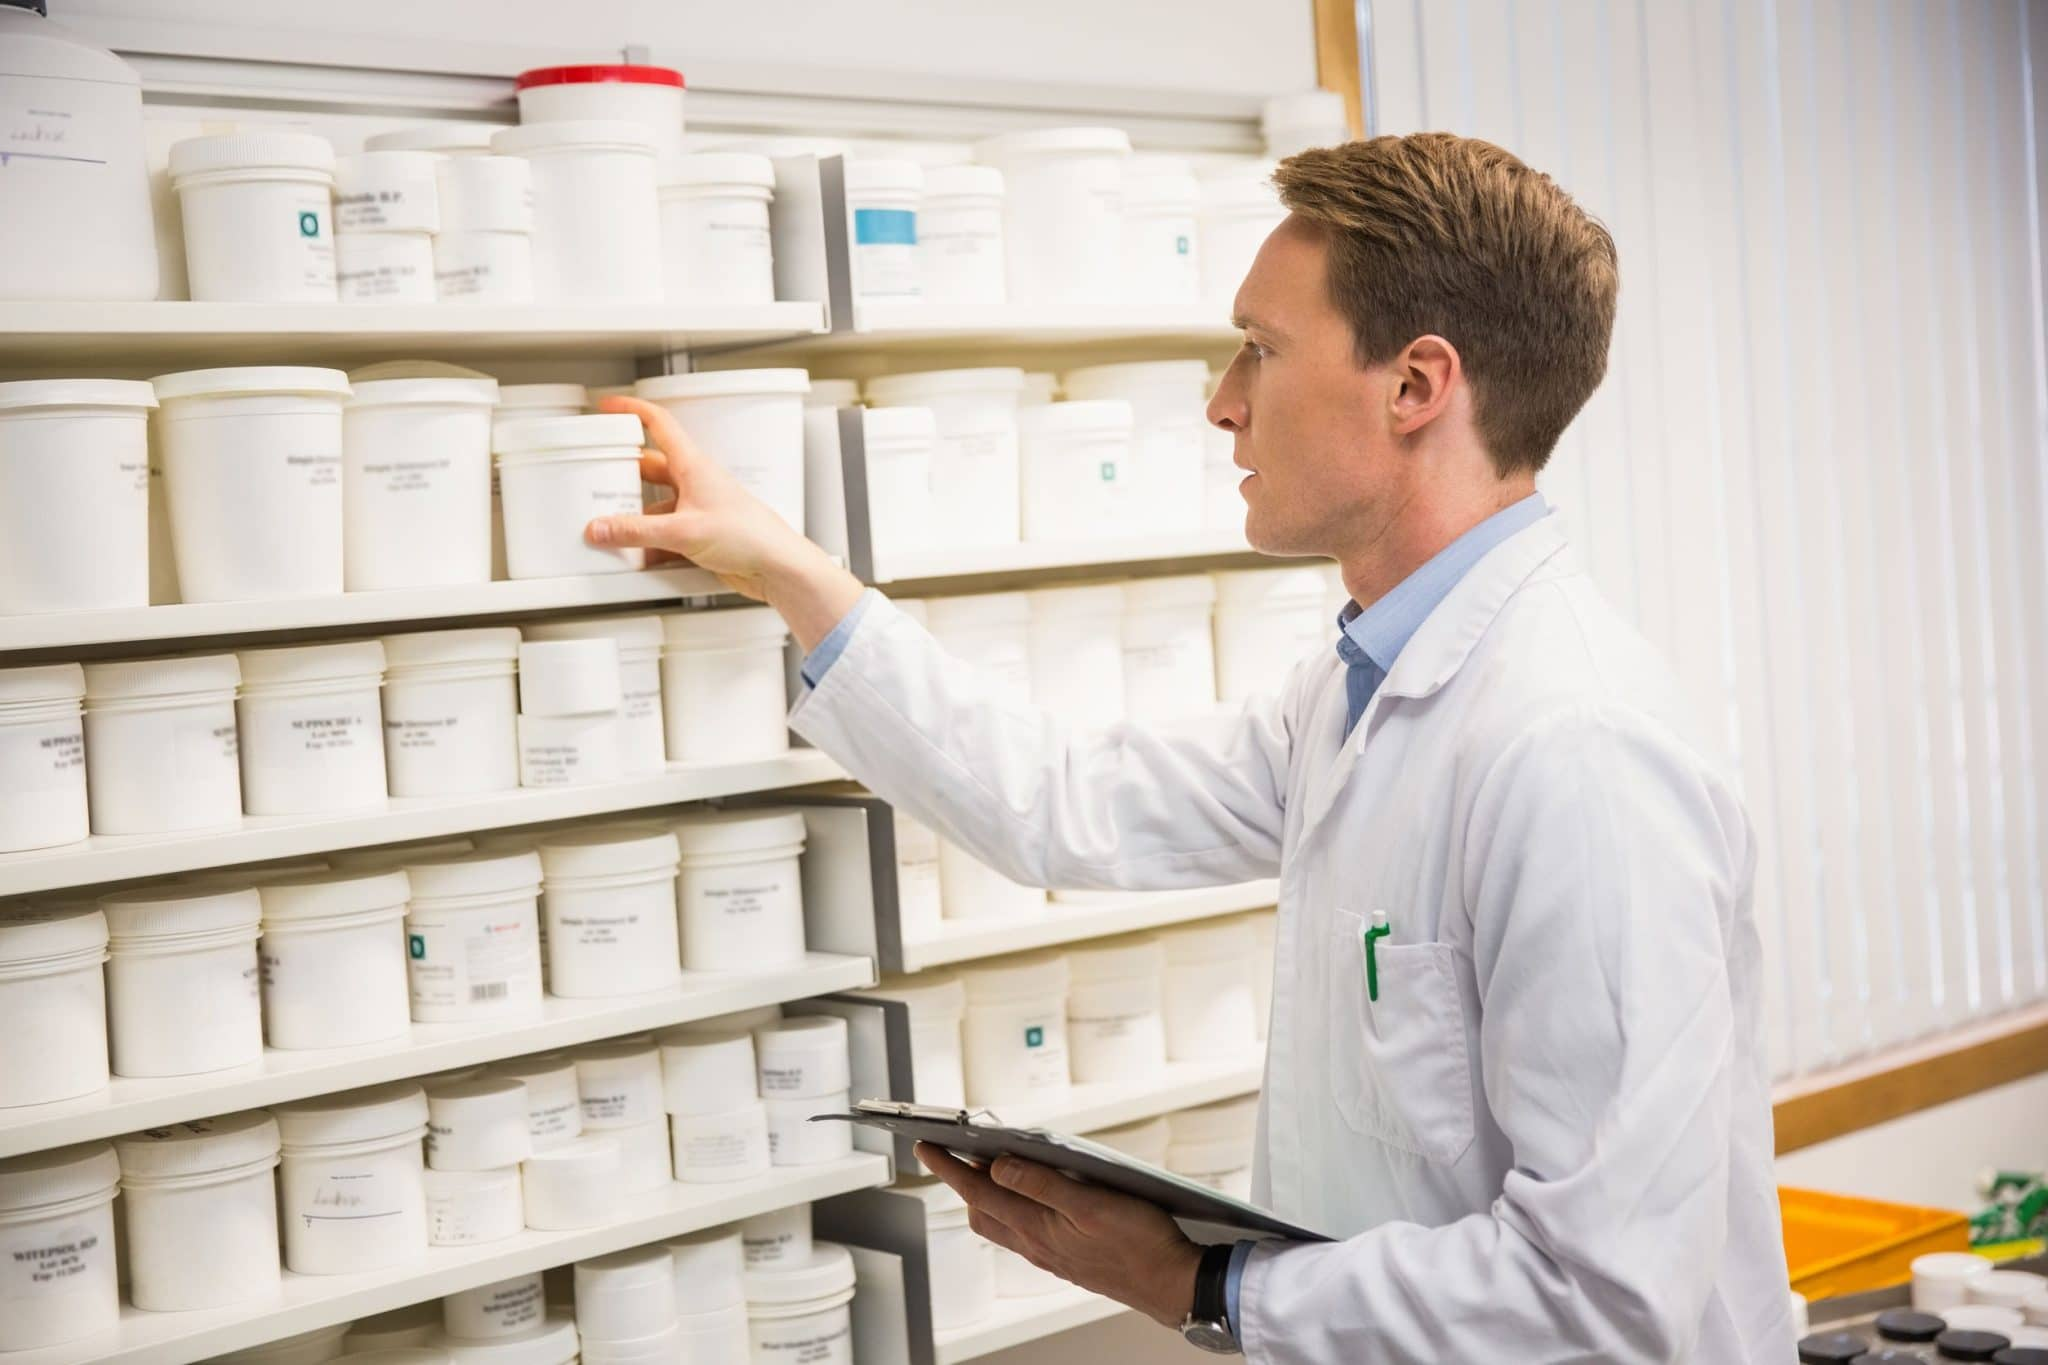 Compounding Pharmacist Checking Medications